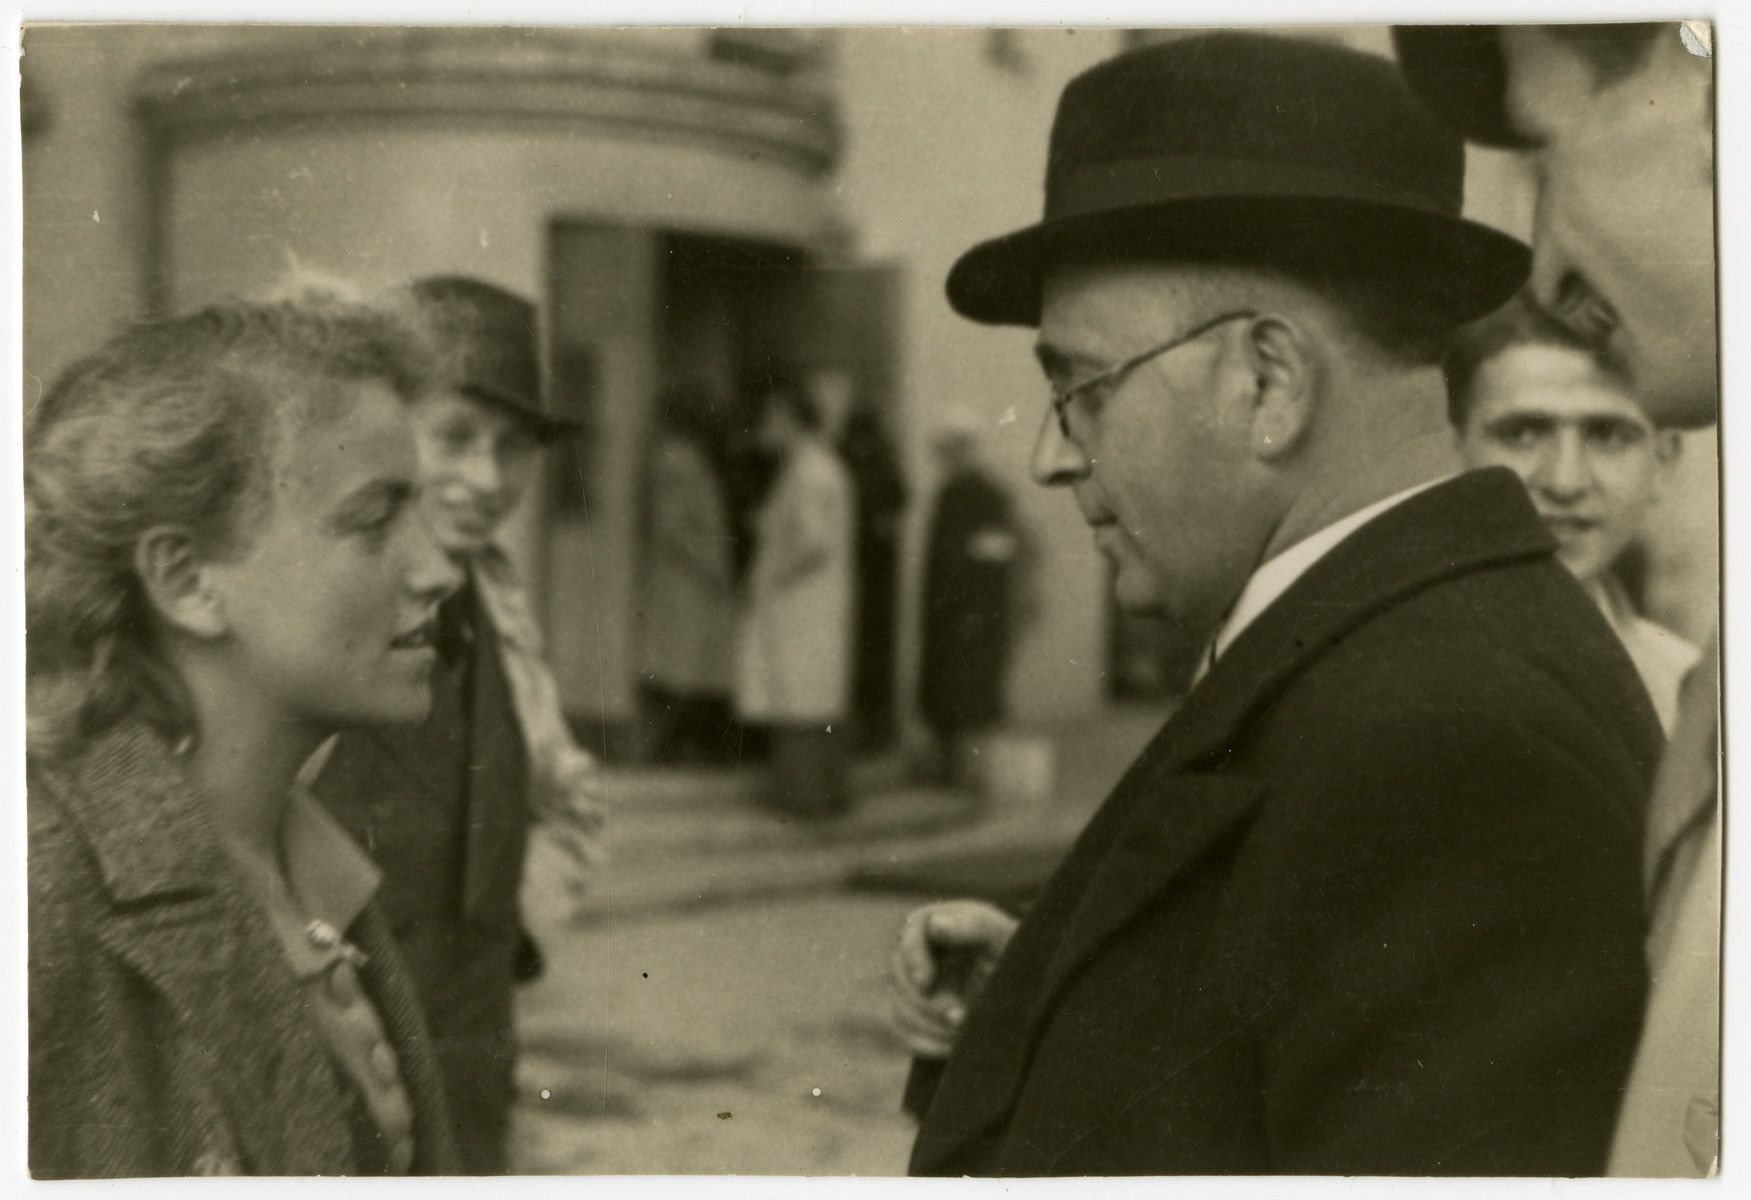 Rosza Grosman (the photographer's sister) talks with Mr. Moskovic in a street of the Lodz ghetto.  Nachman Zonabend looks on at the far right.